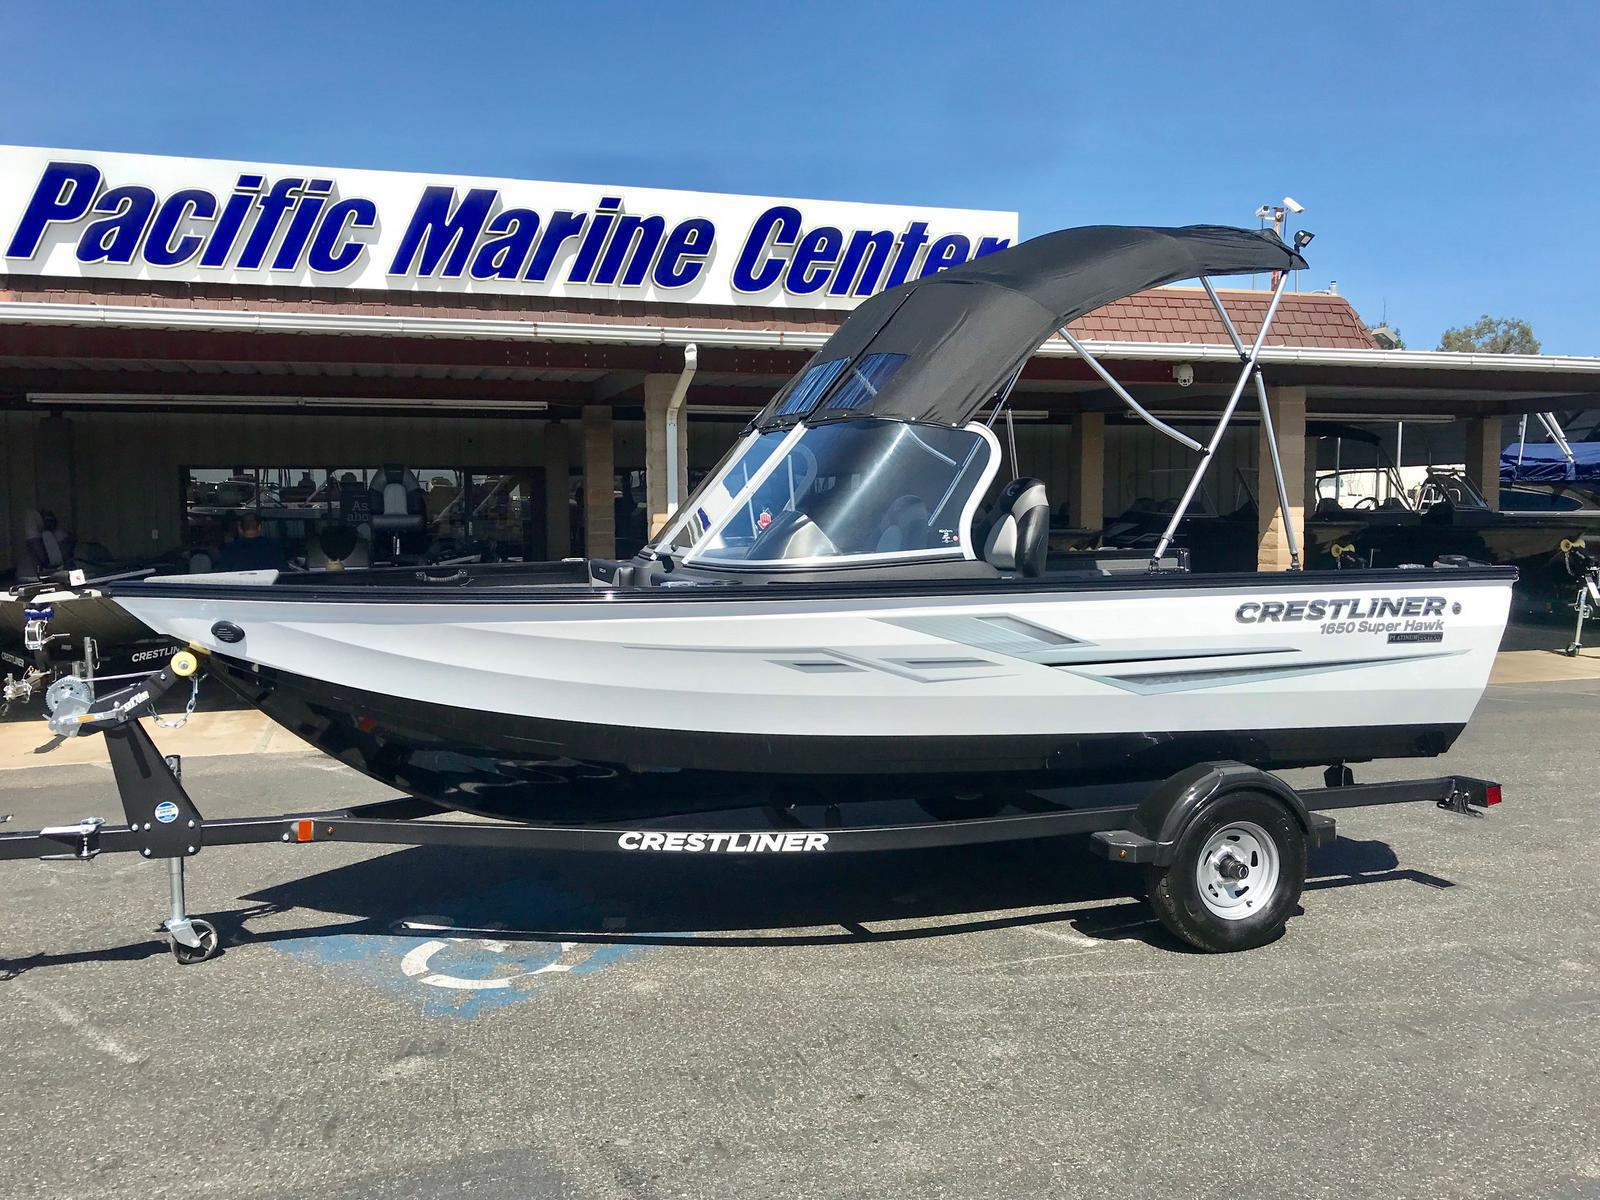 Crestliner 1650 Super Hawk w/ 115HP Mercury 4 stroke